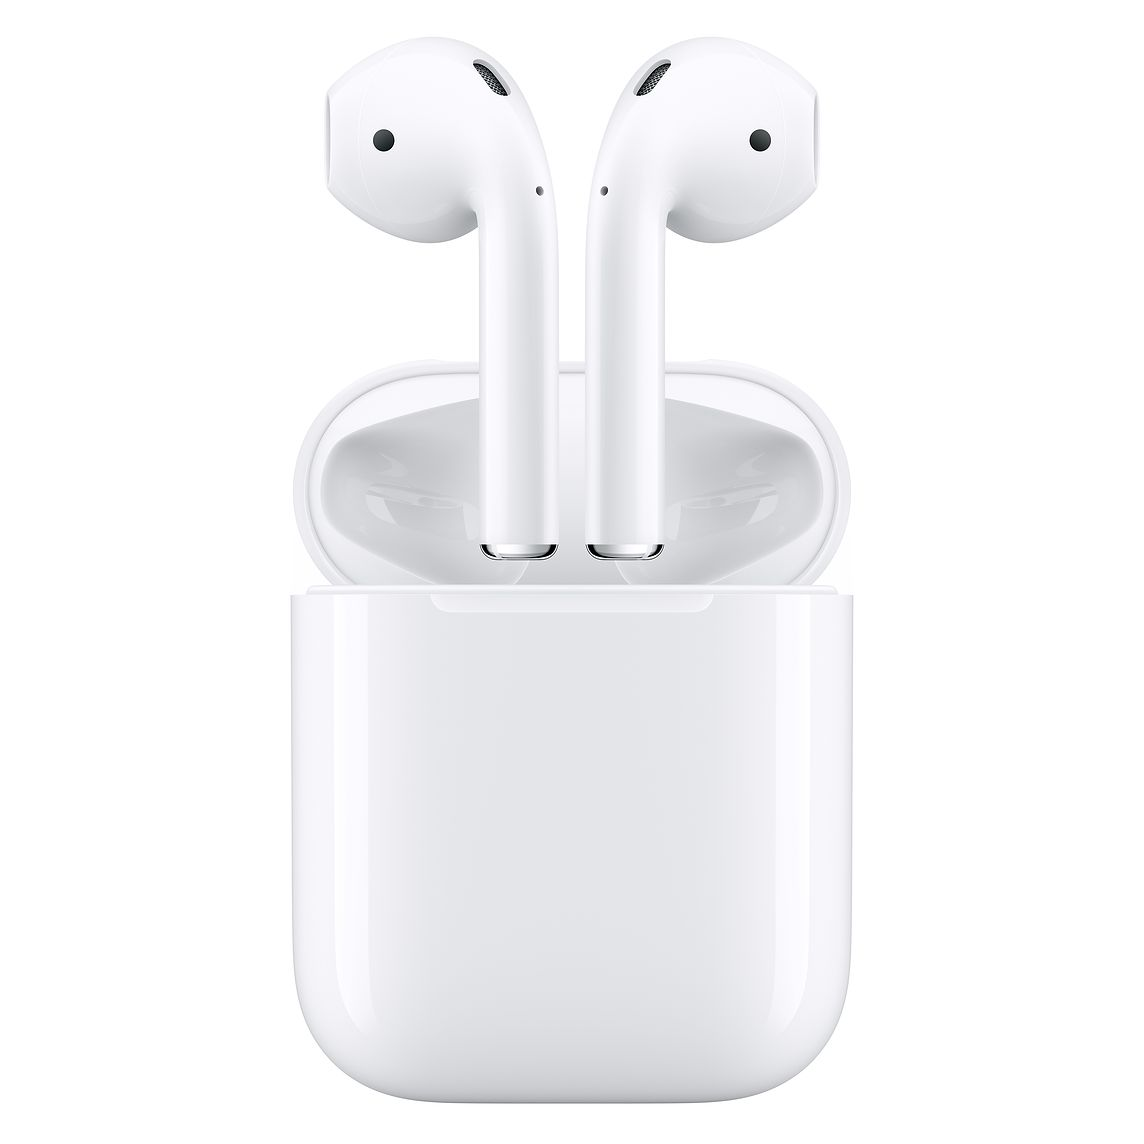 Airpods png iphone. Buy apple